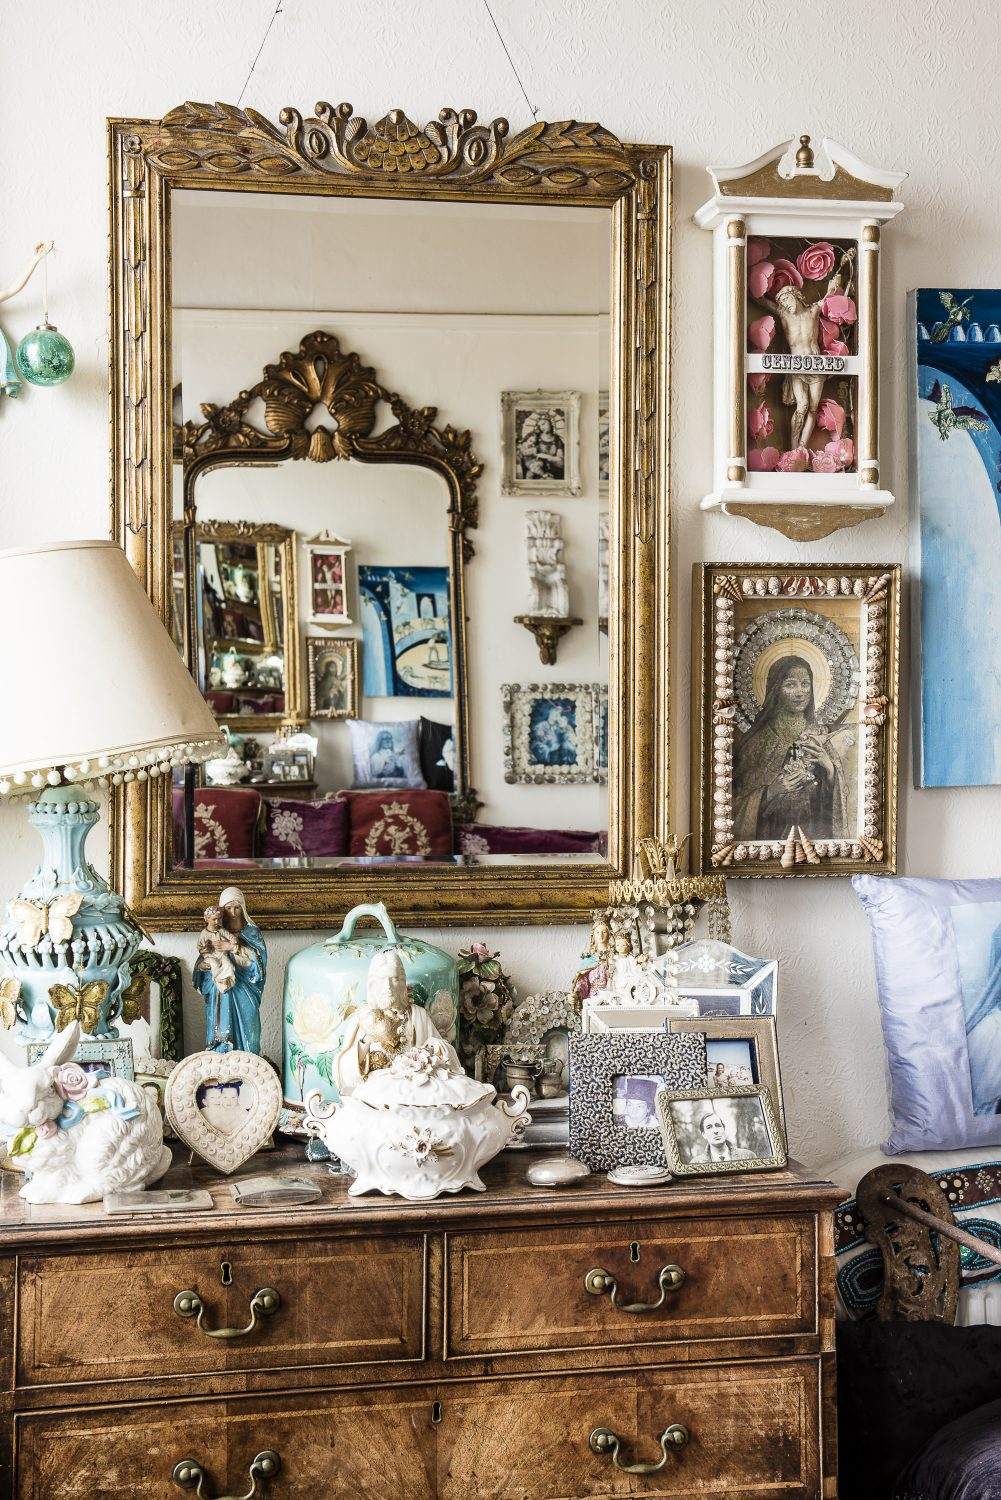 An antique chest of drawers holds a series of family heirlooms and photographs